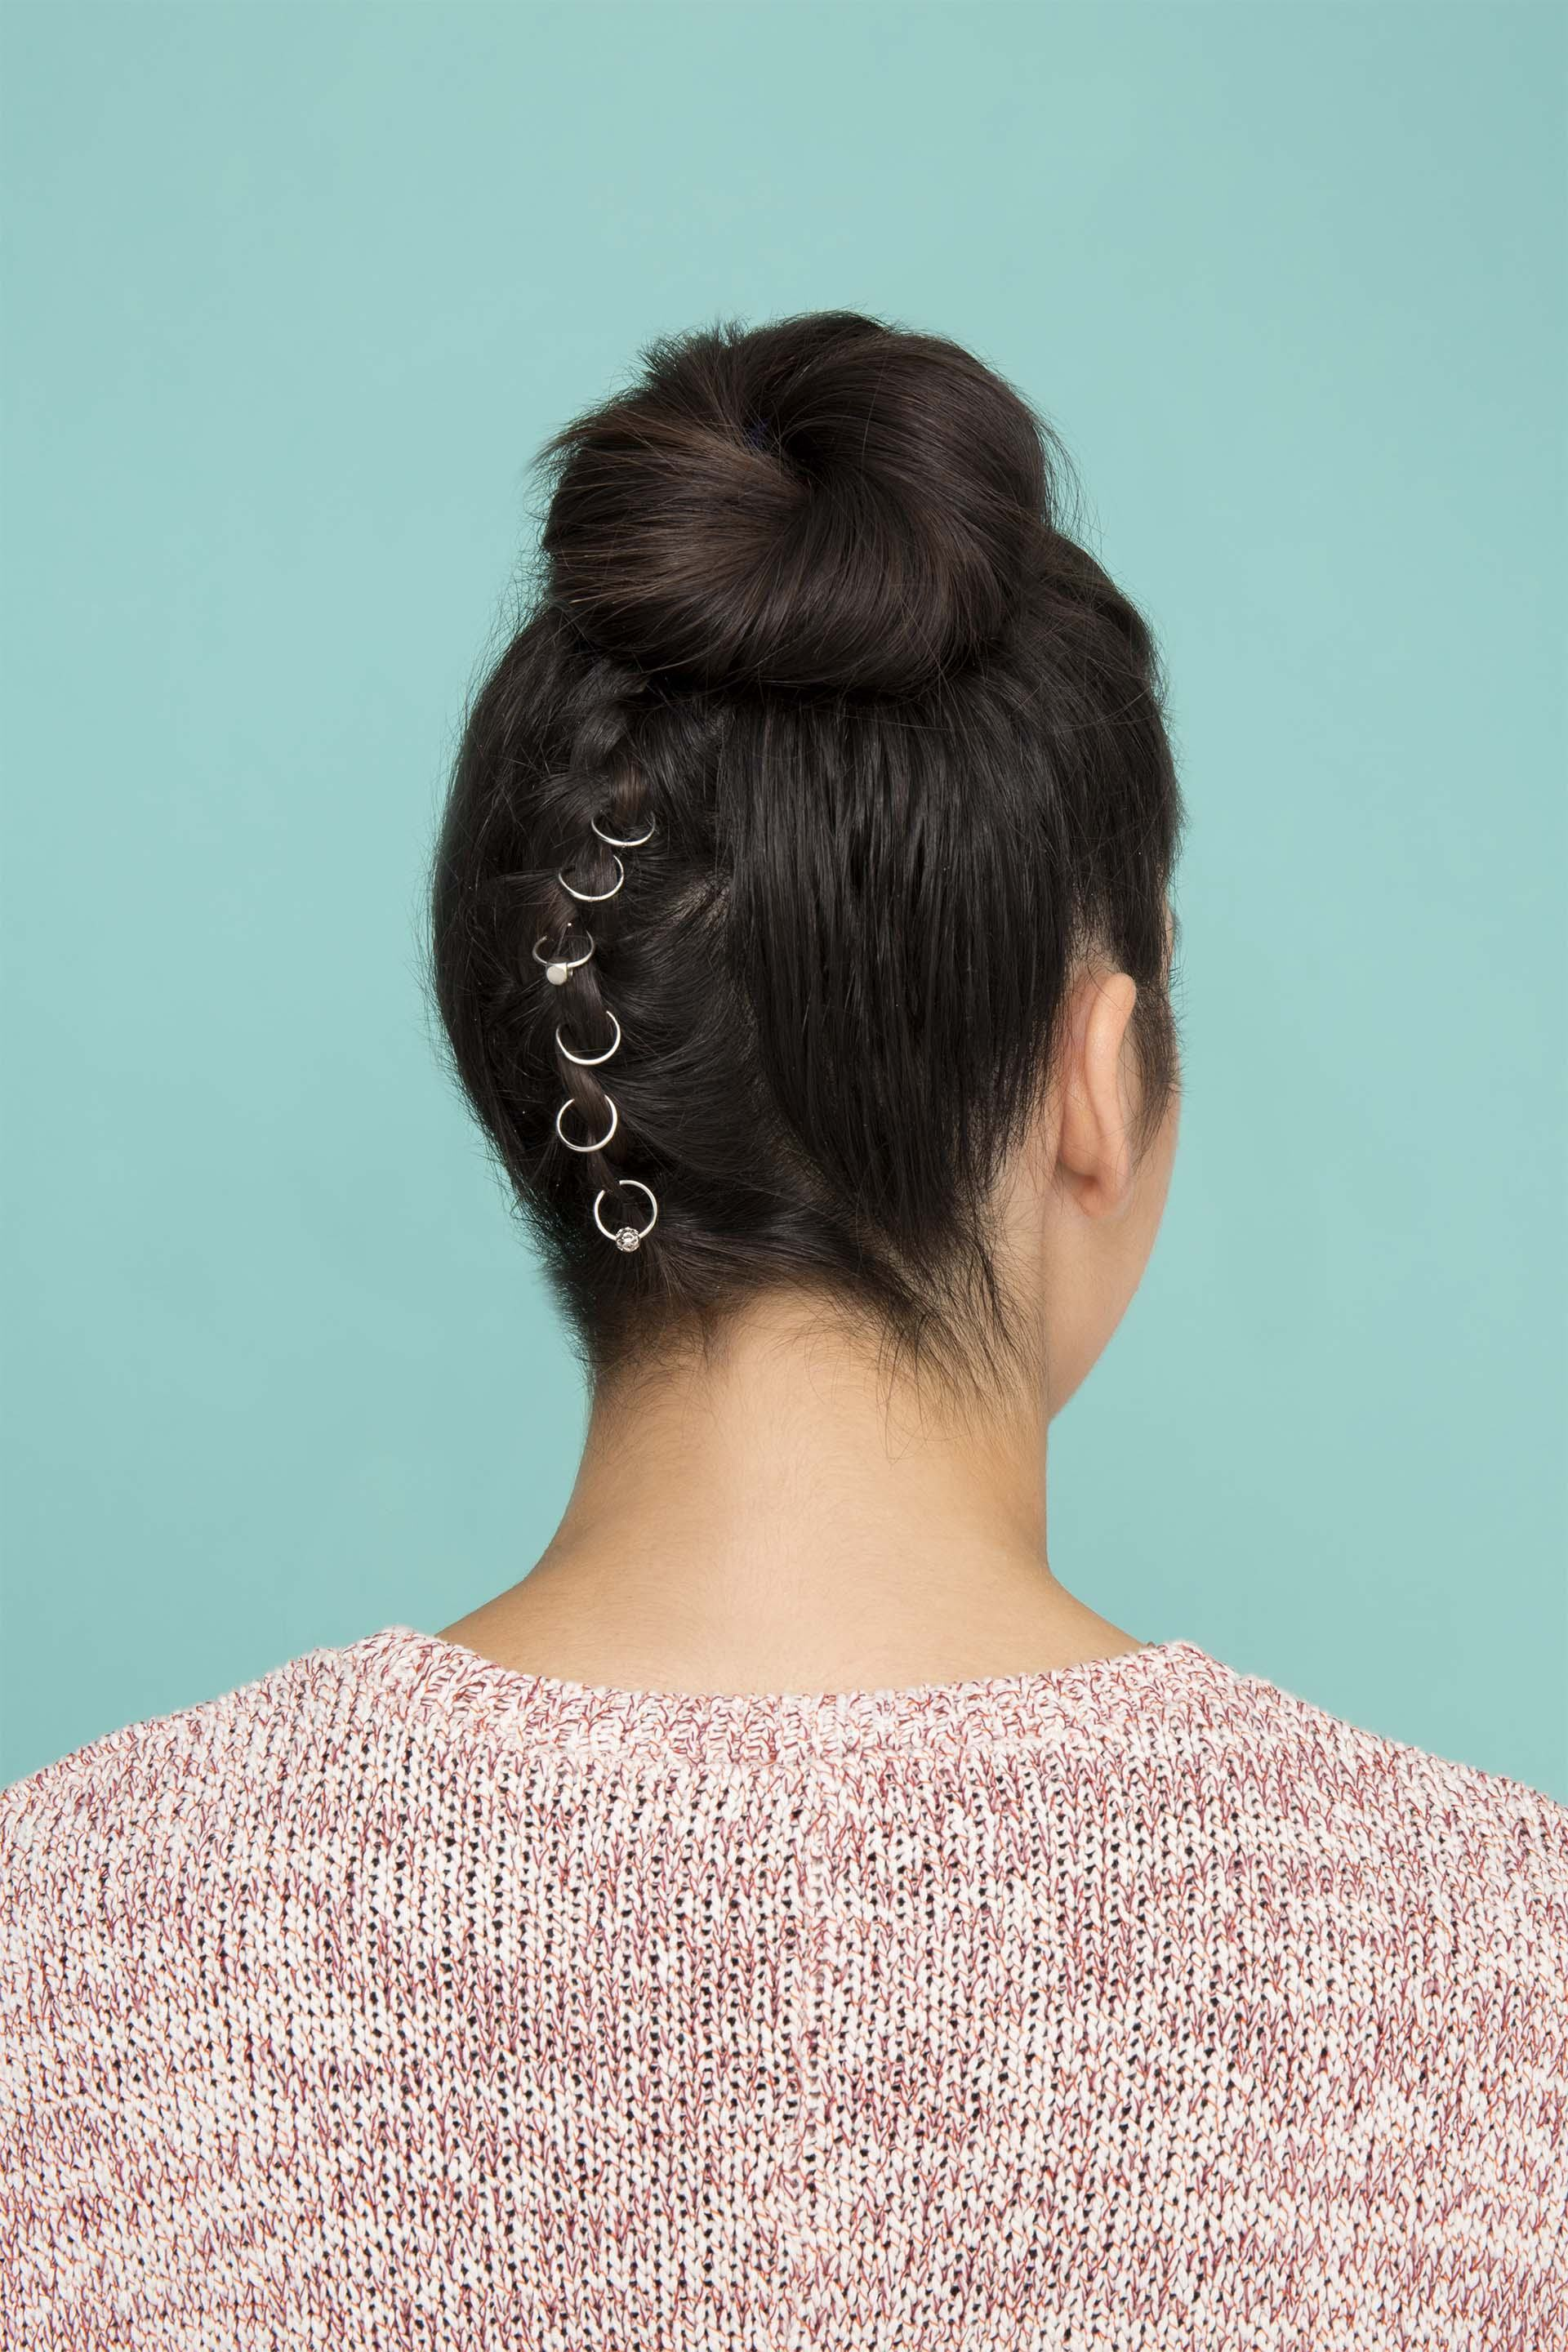 How To Create An Upside Down Braid Bun In 2 Ways 3 Way Switch With Accessories